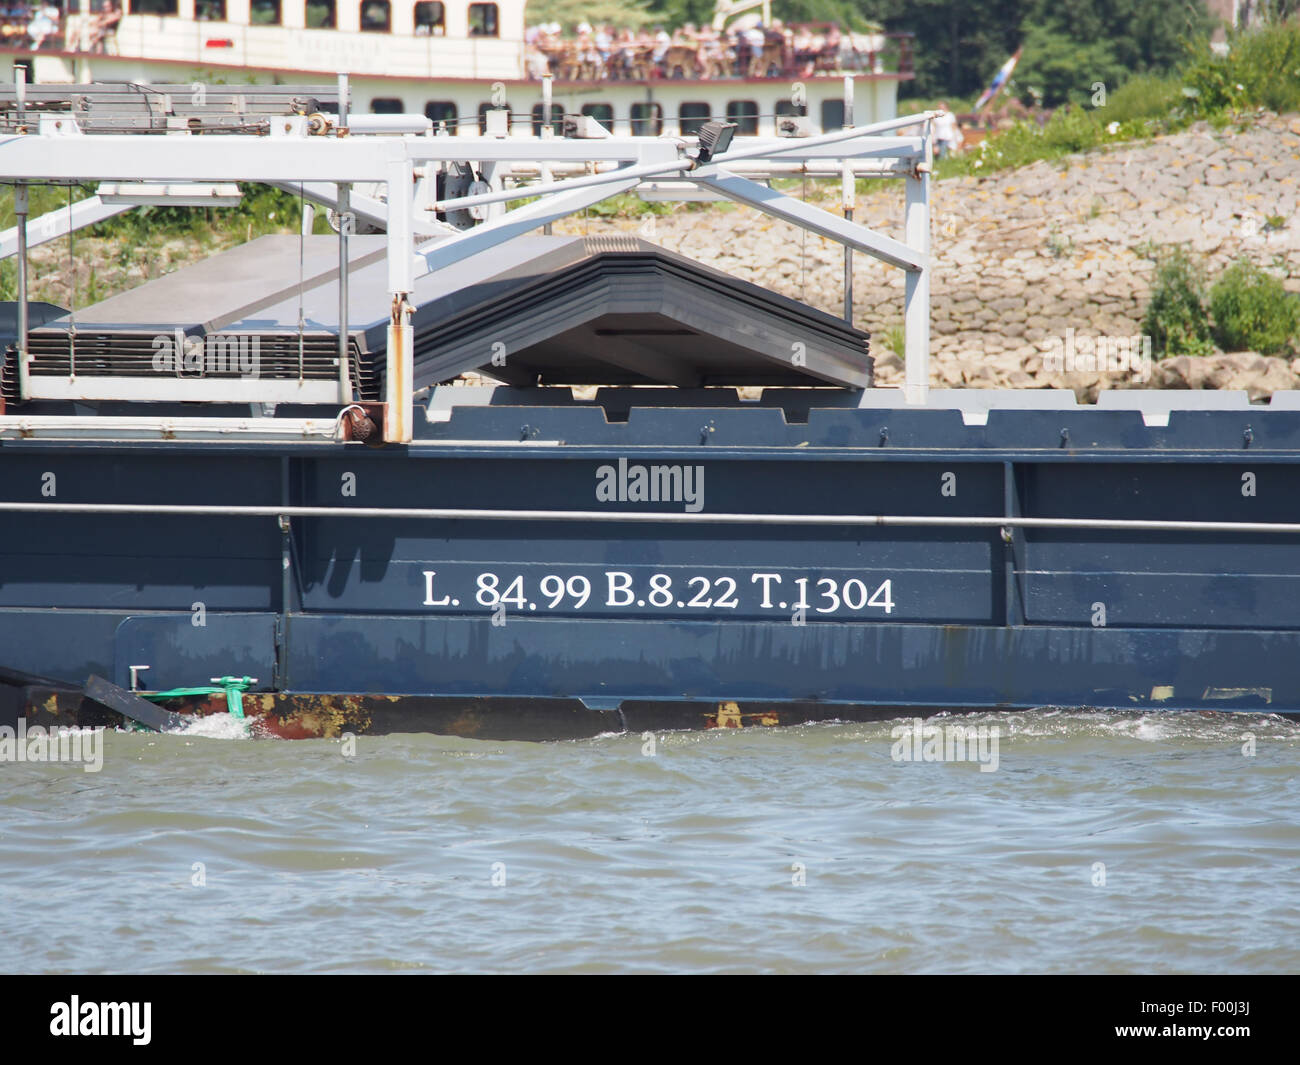 Deviant - ENI 03310475, Noord rivier pic4 - Stock Image